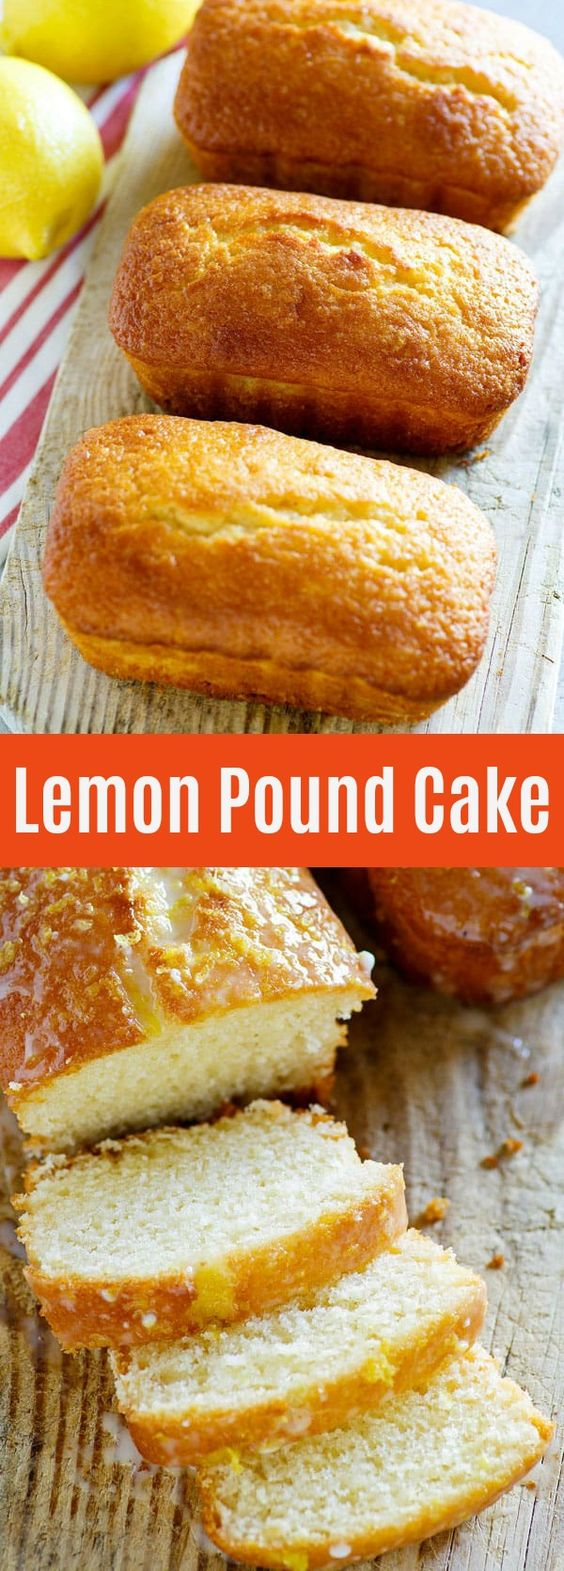 Lemon Pound Cake - buttery, sweet and lemony pound cake with sugary glaze. This lemon pound cake recipe is so good you'll want it every day | rasamalaysia.com